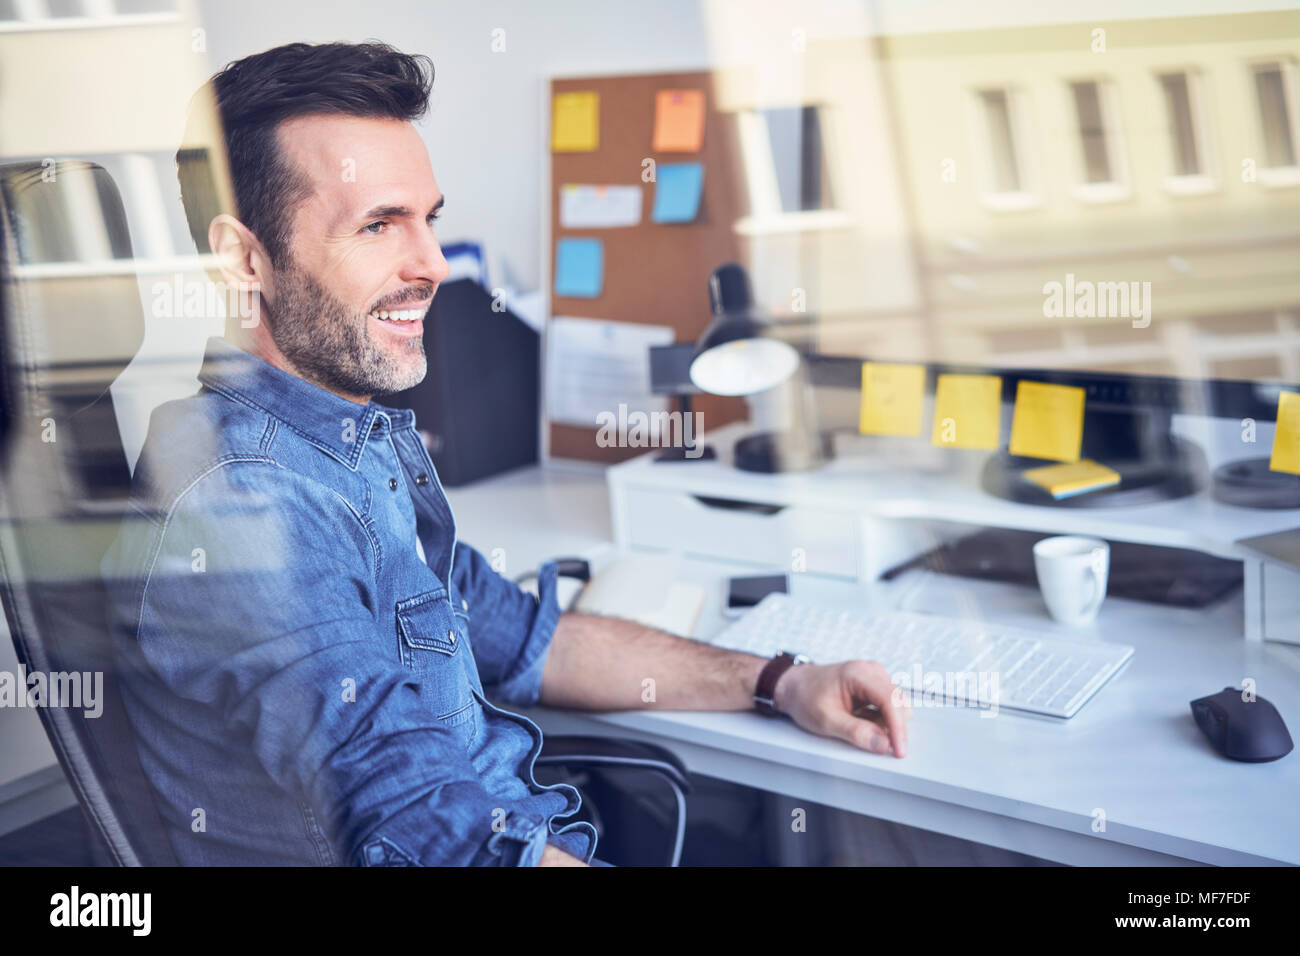 Smiling man looking through window in office sitting at desk - Stock Image